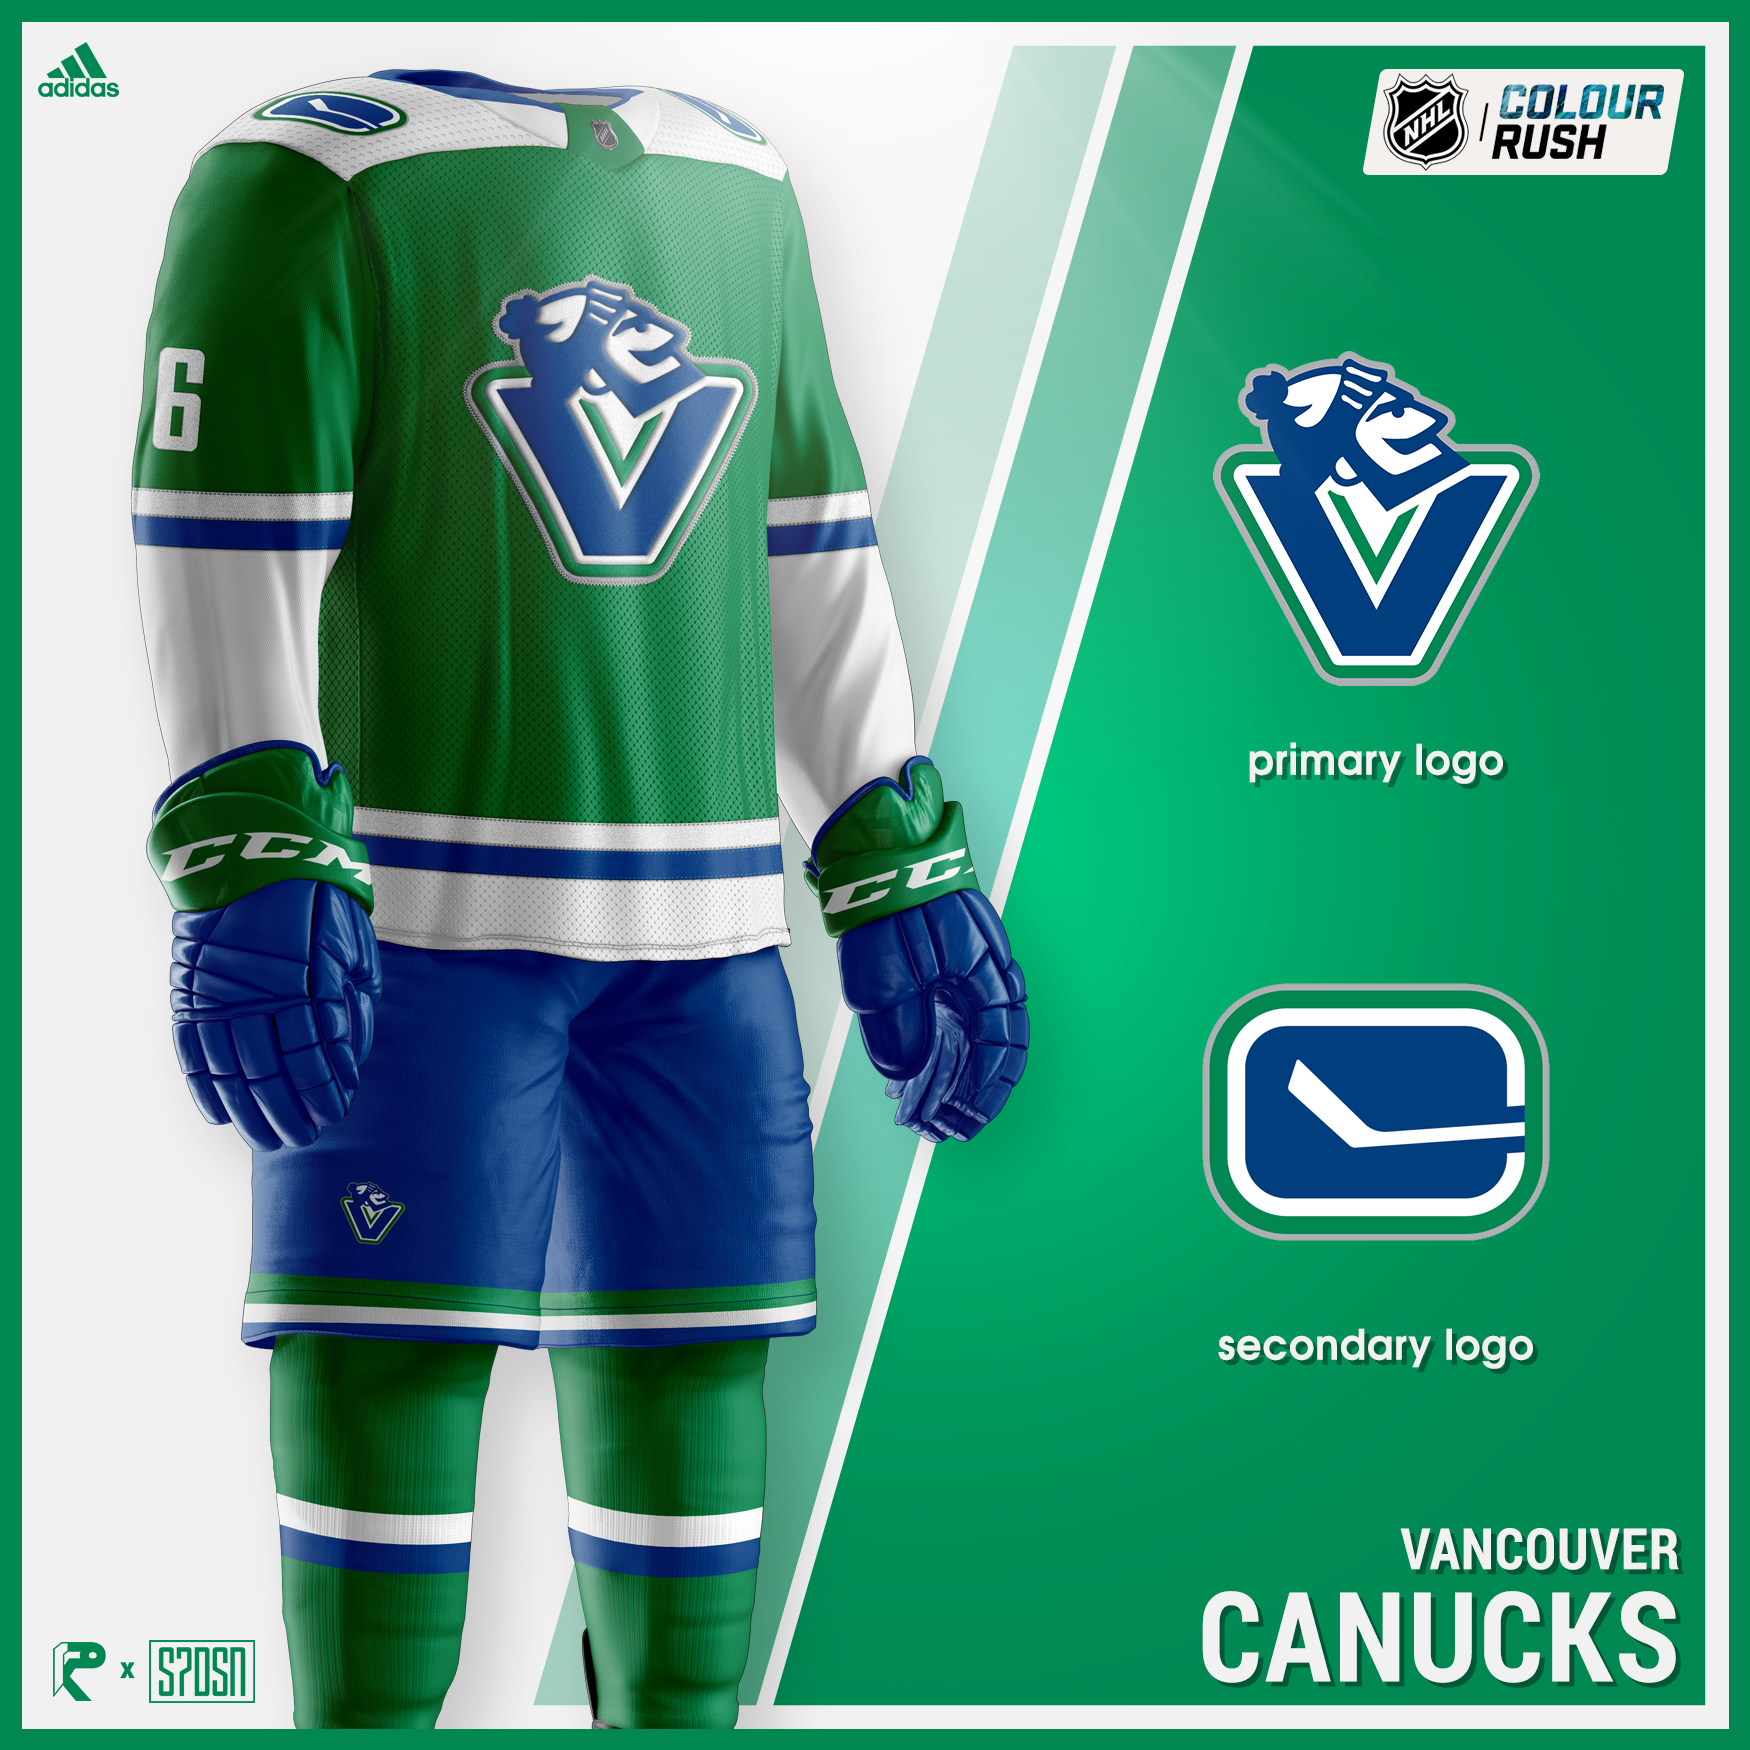 TWITTER MEDIAAnother beauty mock-up 3rd by  S7Dsn NHL-Colour-Rush-Series ... aba53ebef